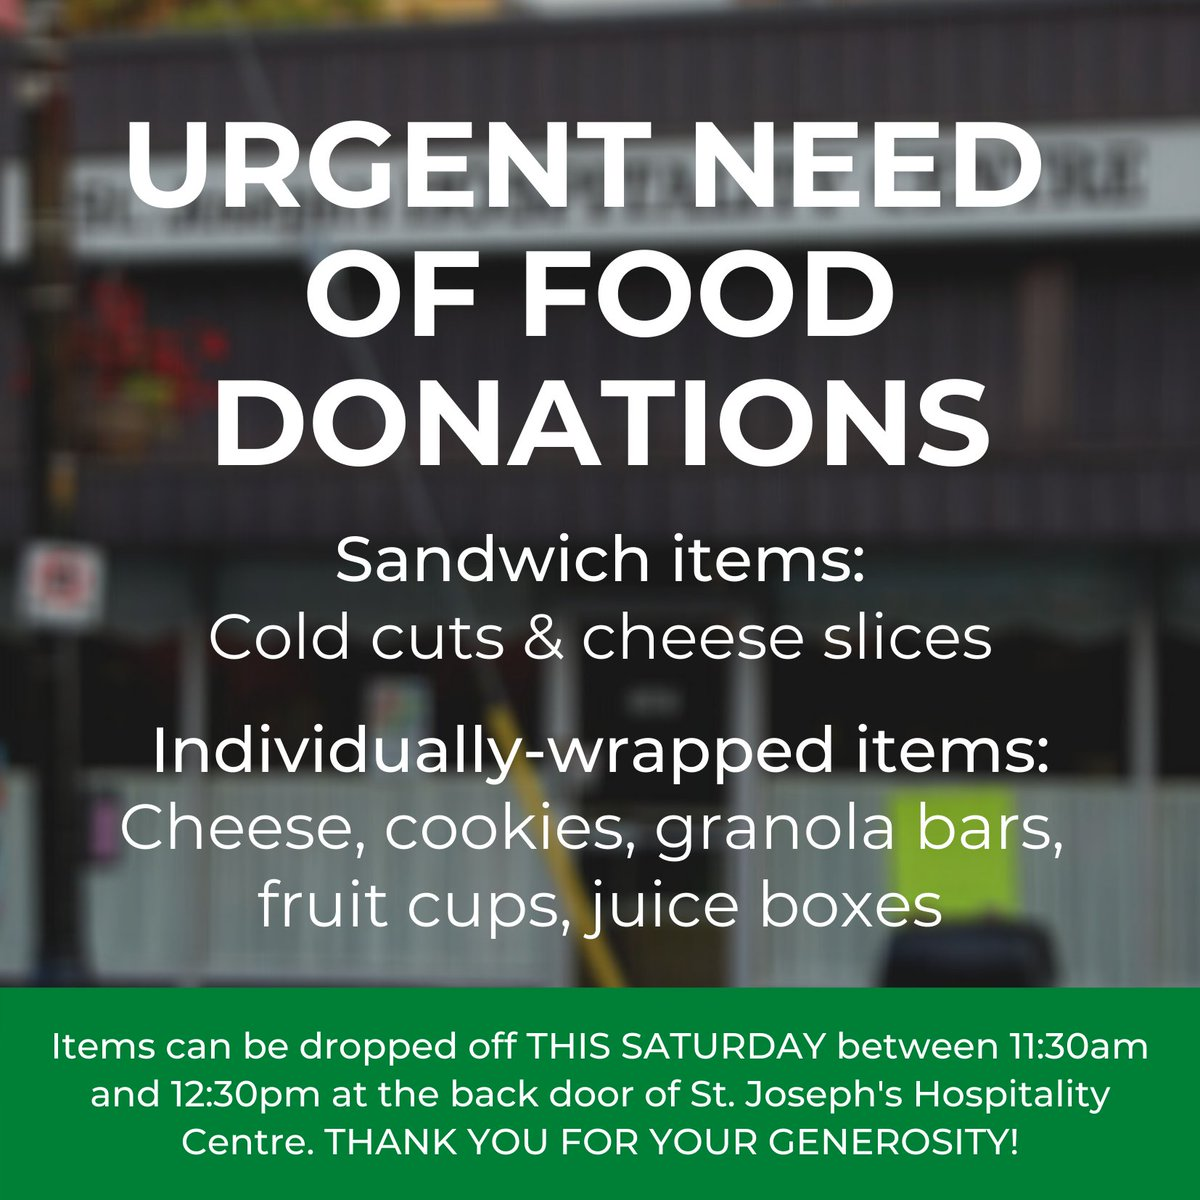 URGENT NEED OF FOOD DONATIONS for Hospitality Ctr. We need: cold cuts & cheese slices, individually-wrapped items (cheese, cookies, granola bars, fruit cups, juice boxes). Pls drop off THIS SATURDAY 11:30am-12:30pm @ back dr of 707 Dundas St, Ldn. @kingsatwestern @kingsprincipal